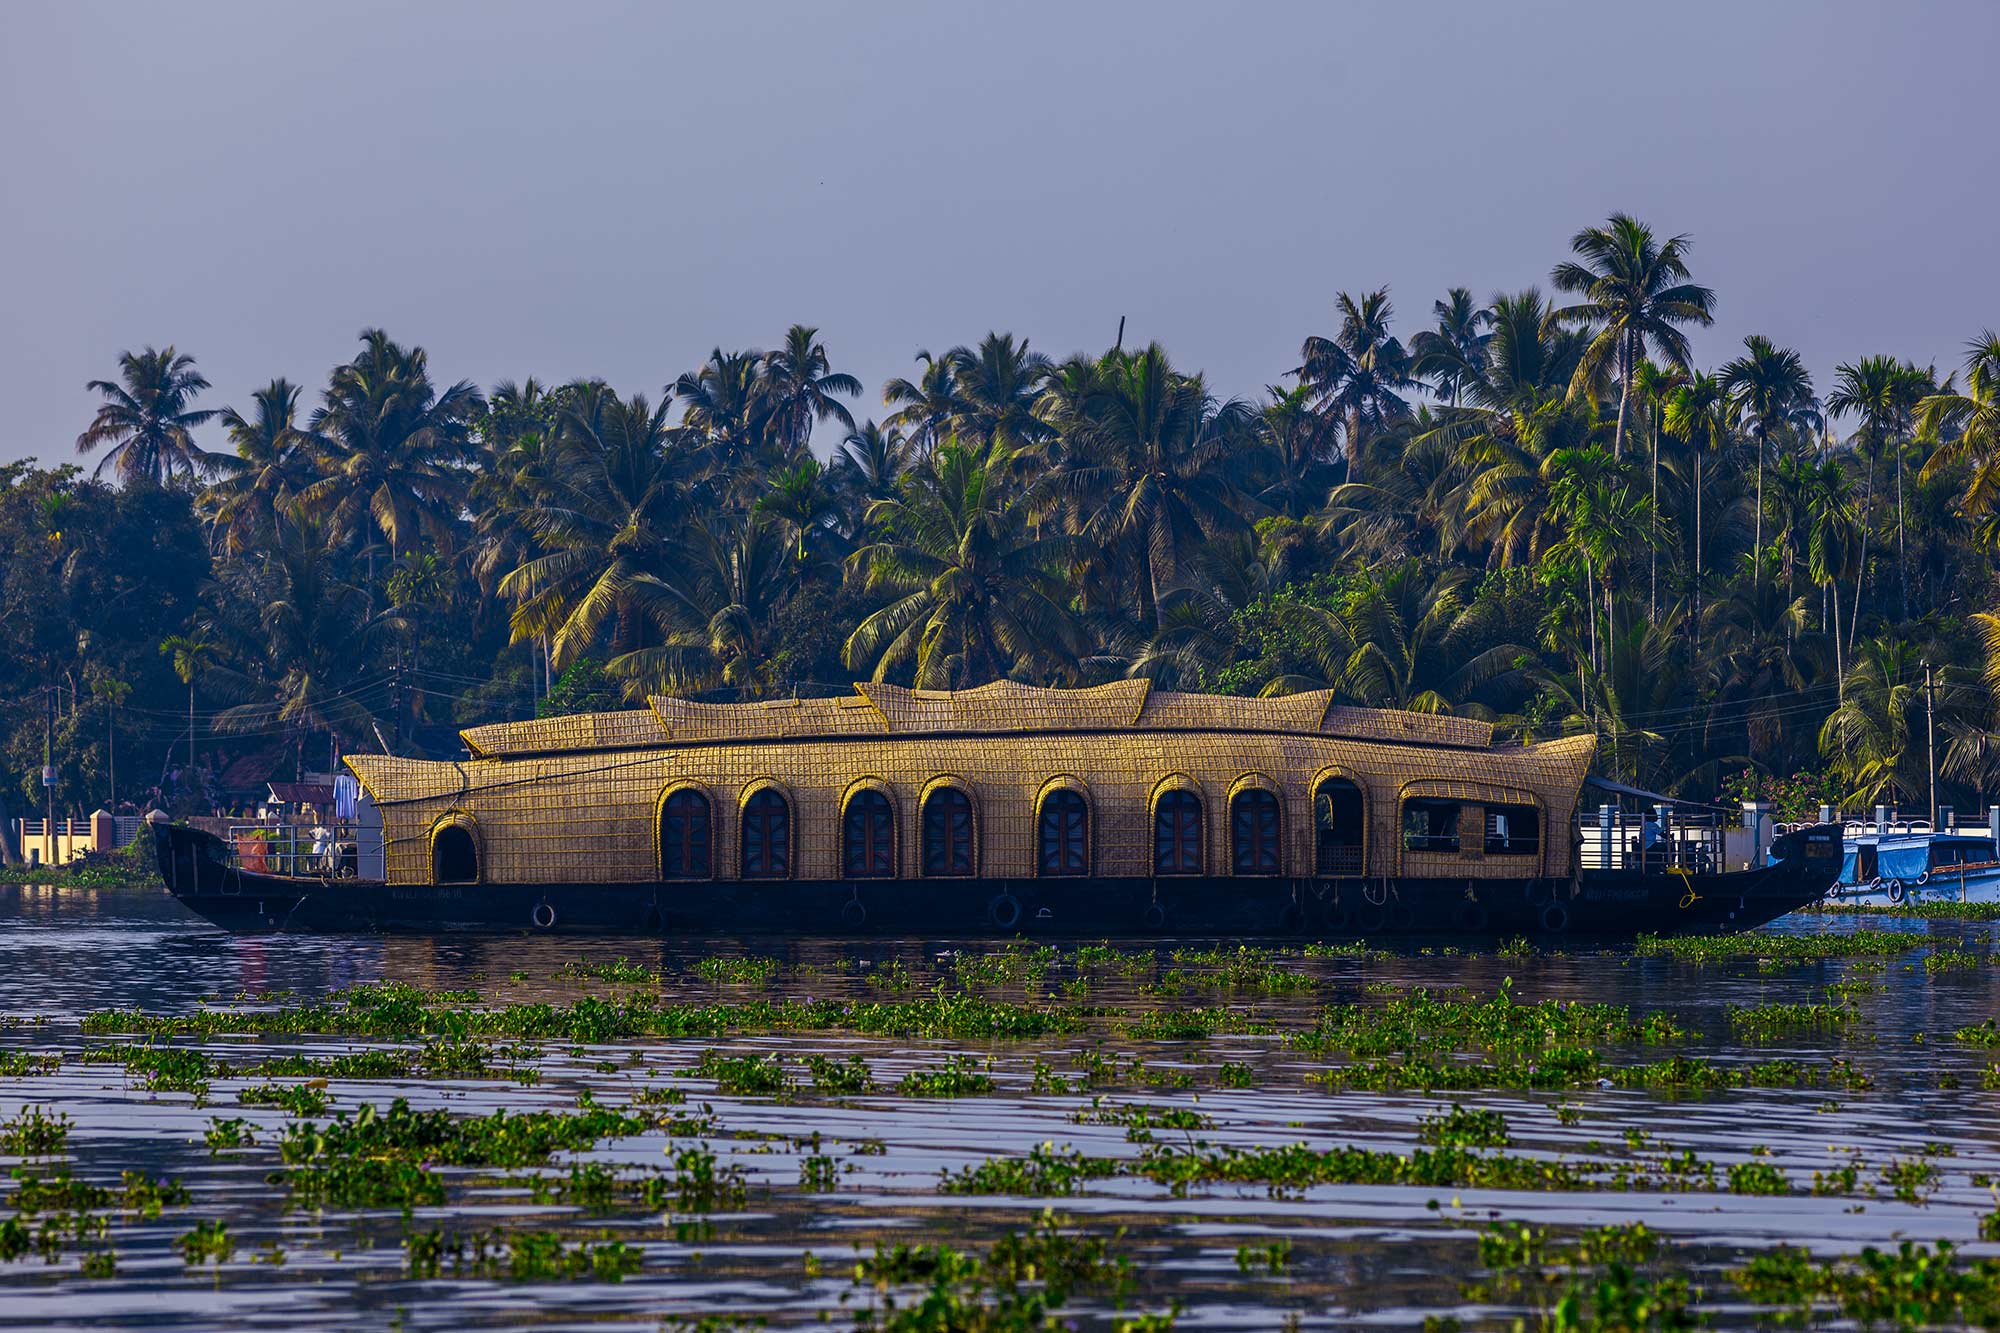 KERALA II: Fort Kochi y los backwaters de Alleppey